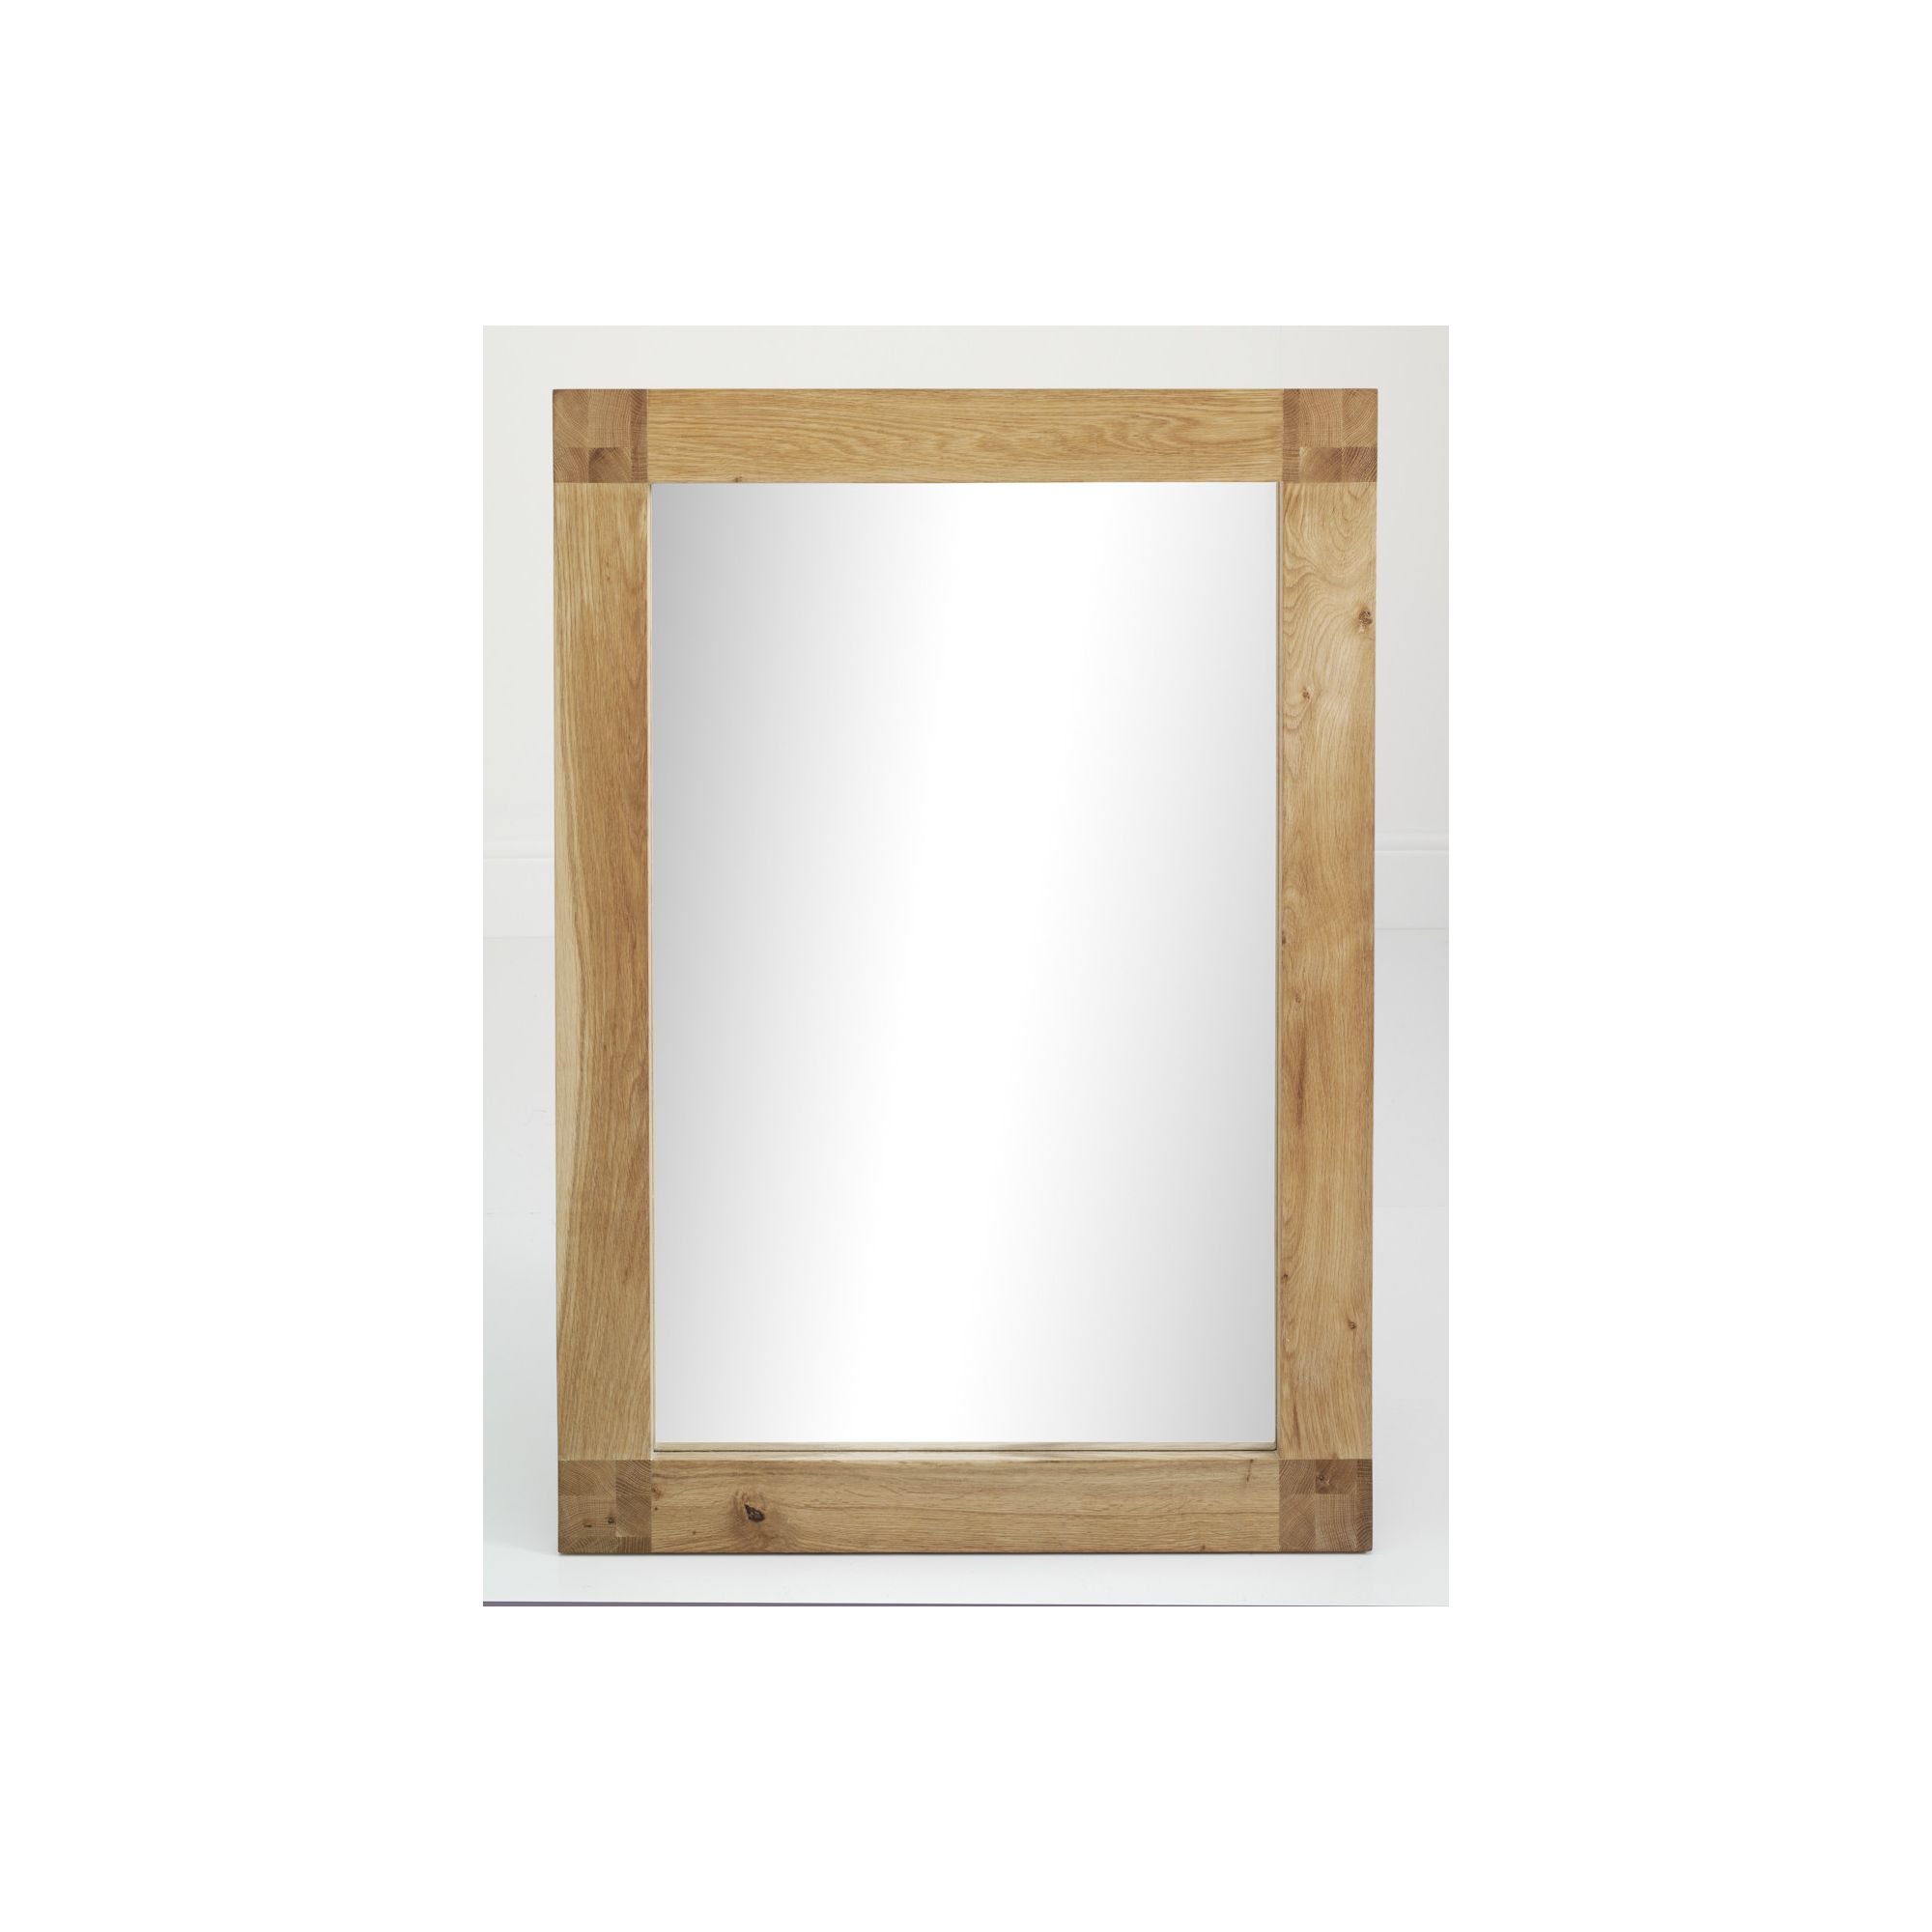 Originals UK Talin Dining Mirror